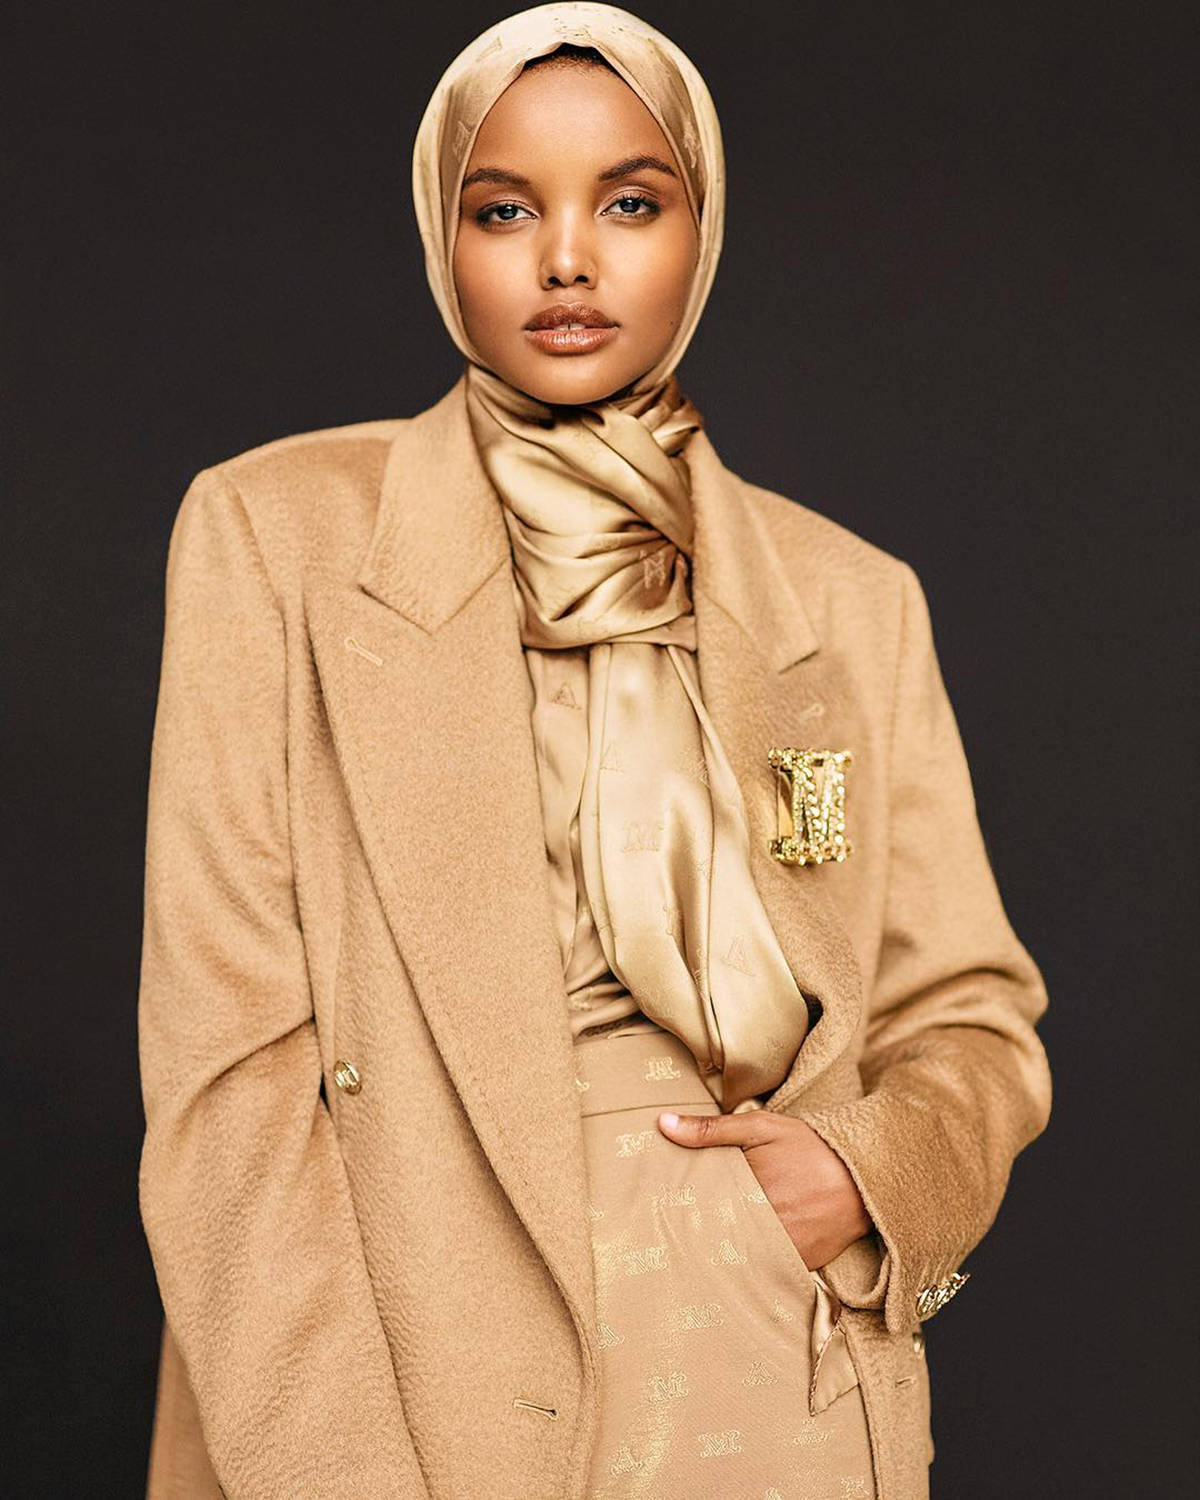 Halima Aden ups the glam quotient with her stunning beauty